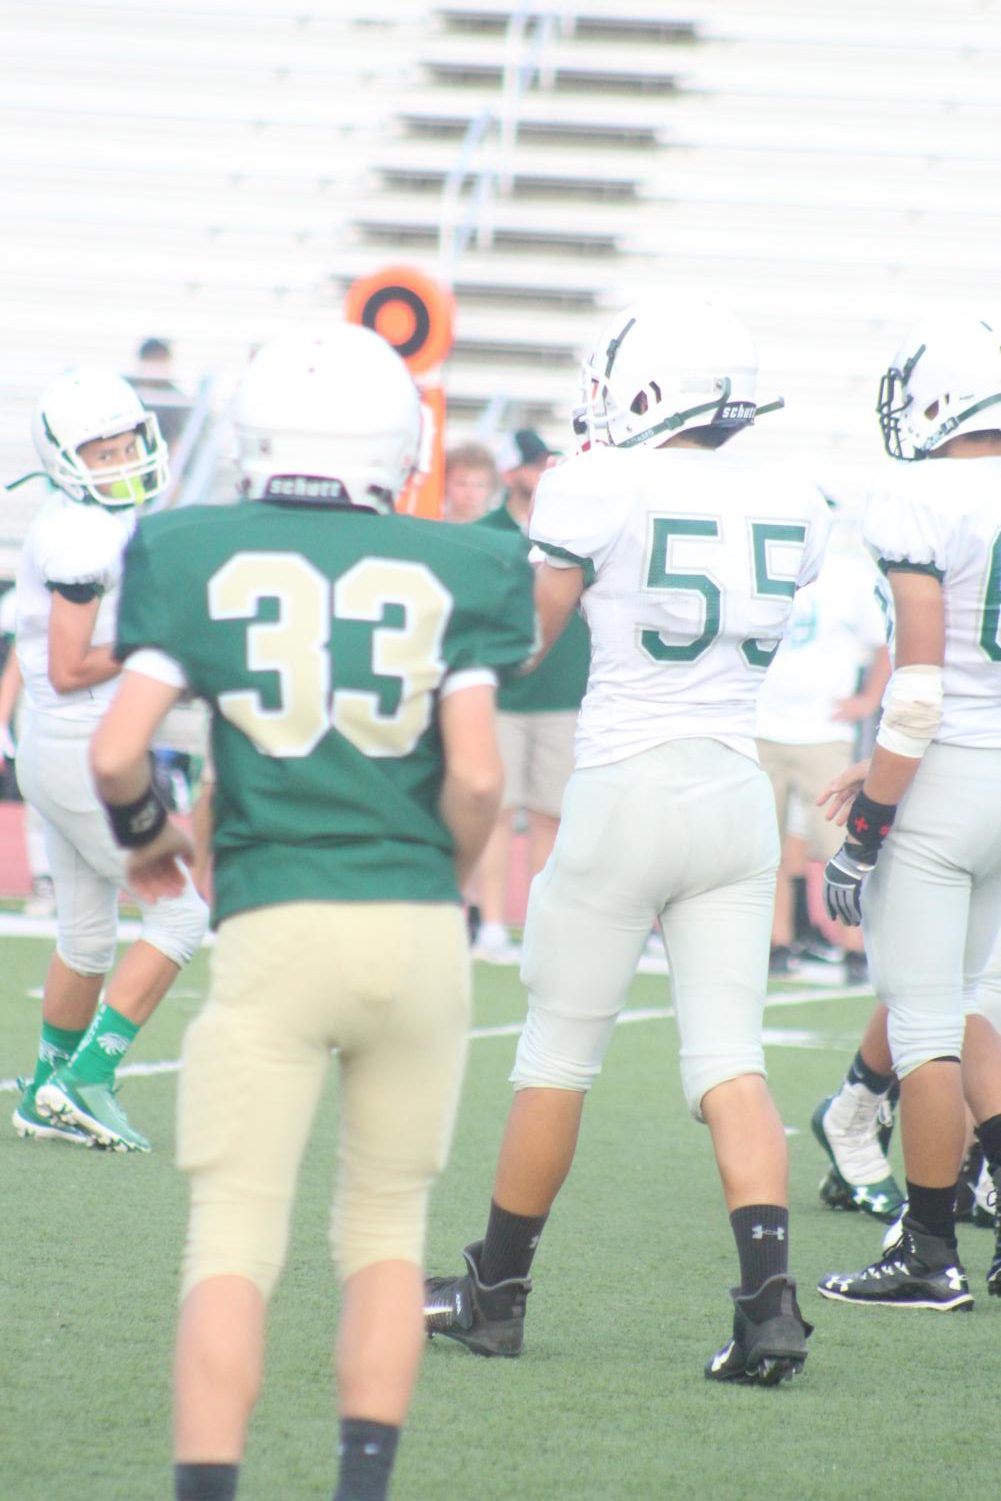 Derby middle school unity game (Photos by Callie Knudson)